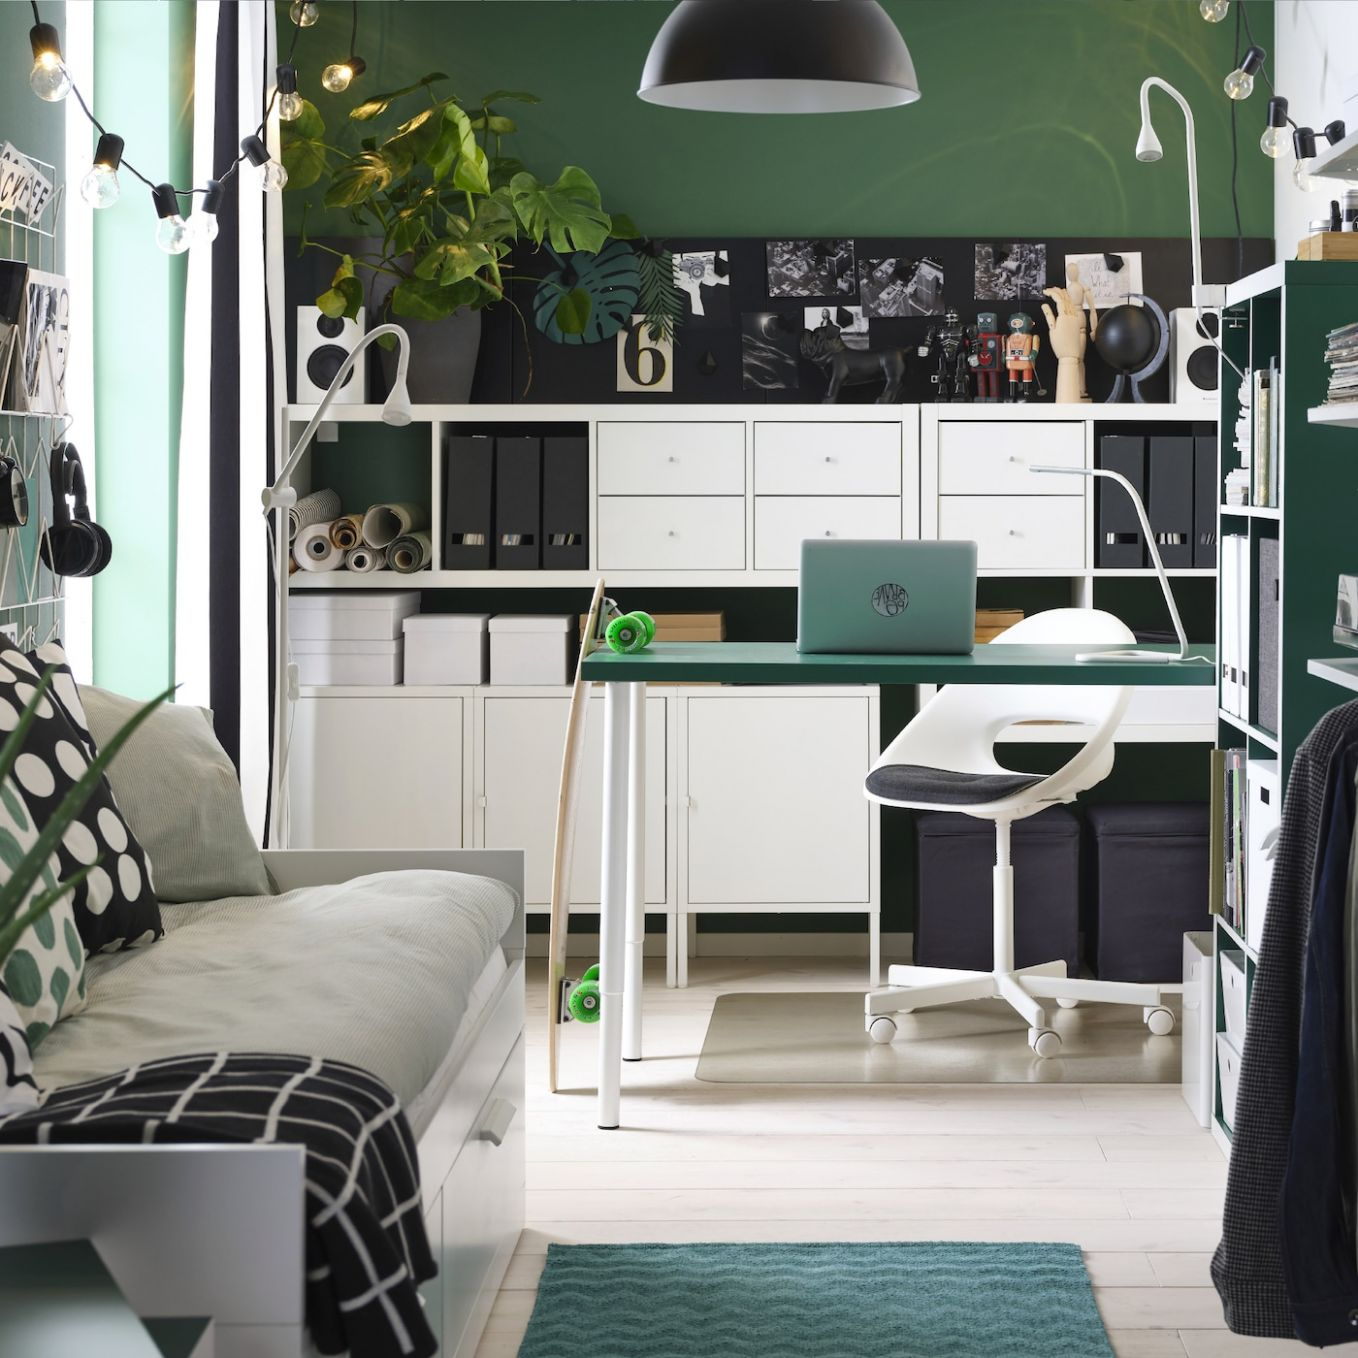 Office Ideas - Office Inspiration - Home Office Ideas - IKEA - kallax home office ideas